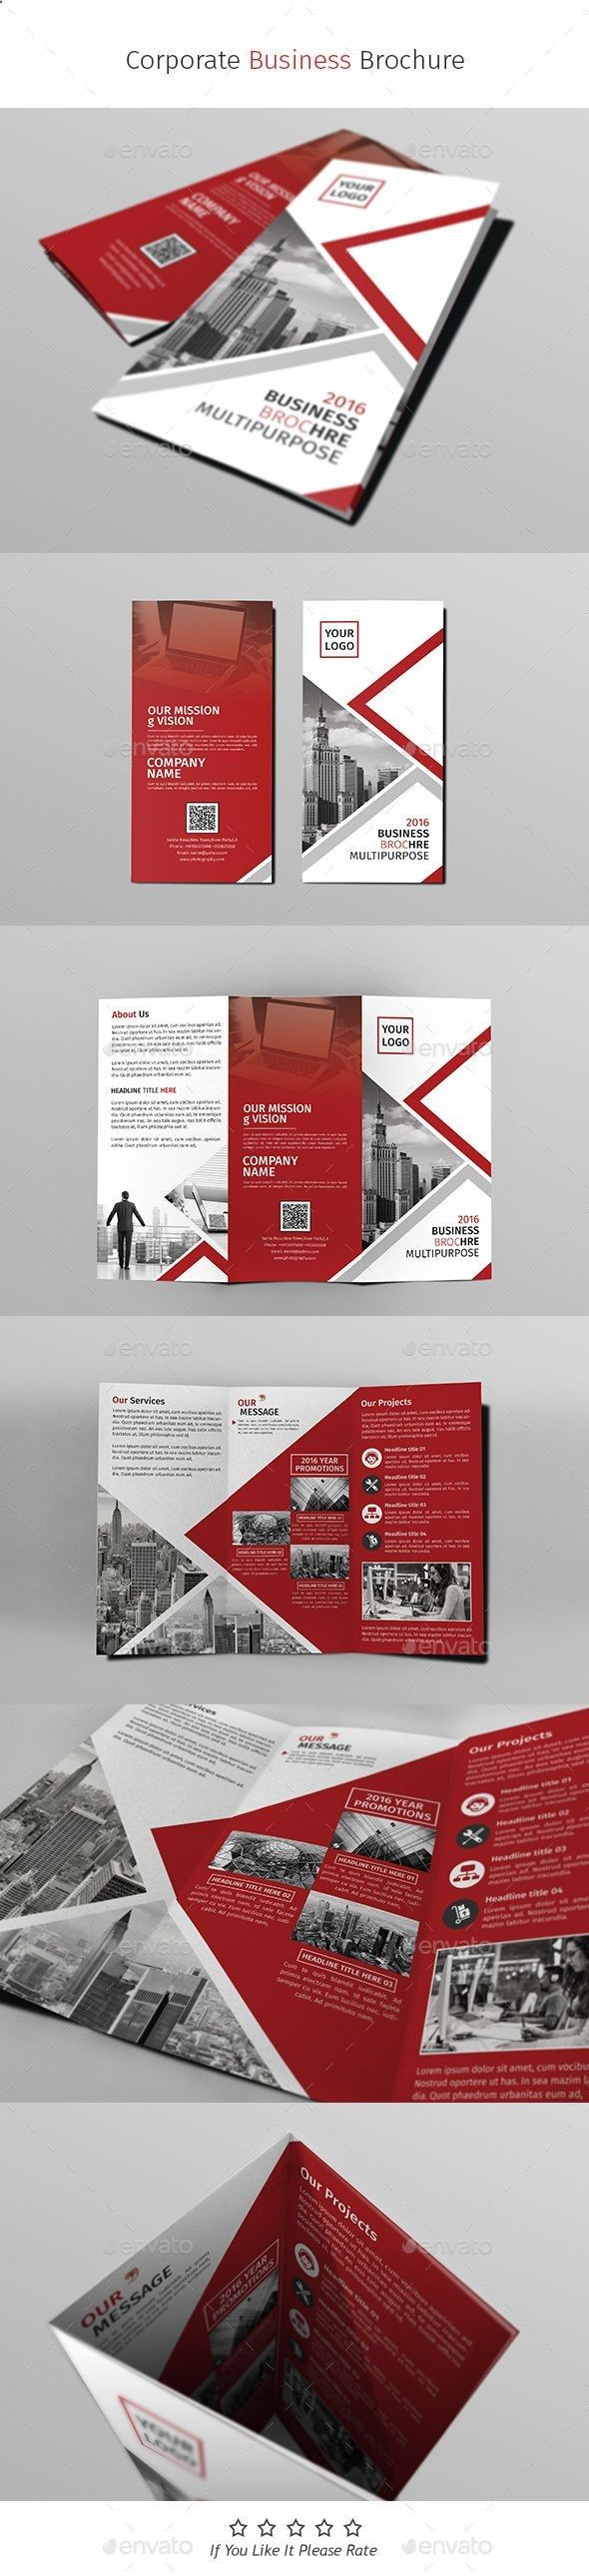 A4 corporate business flyer template psd design download a4 corporate business flyer template psd design download graphicriver wajeb Gallery